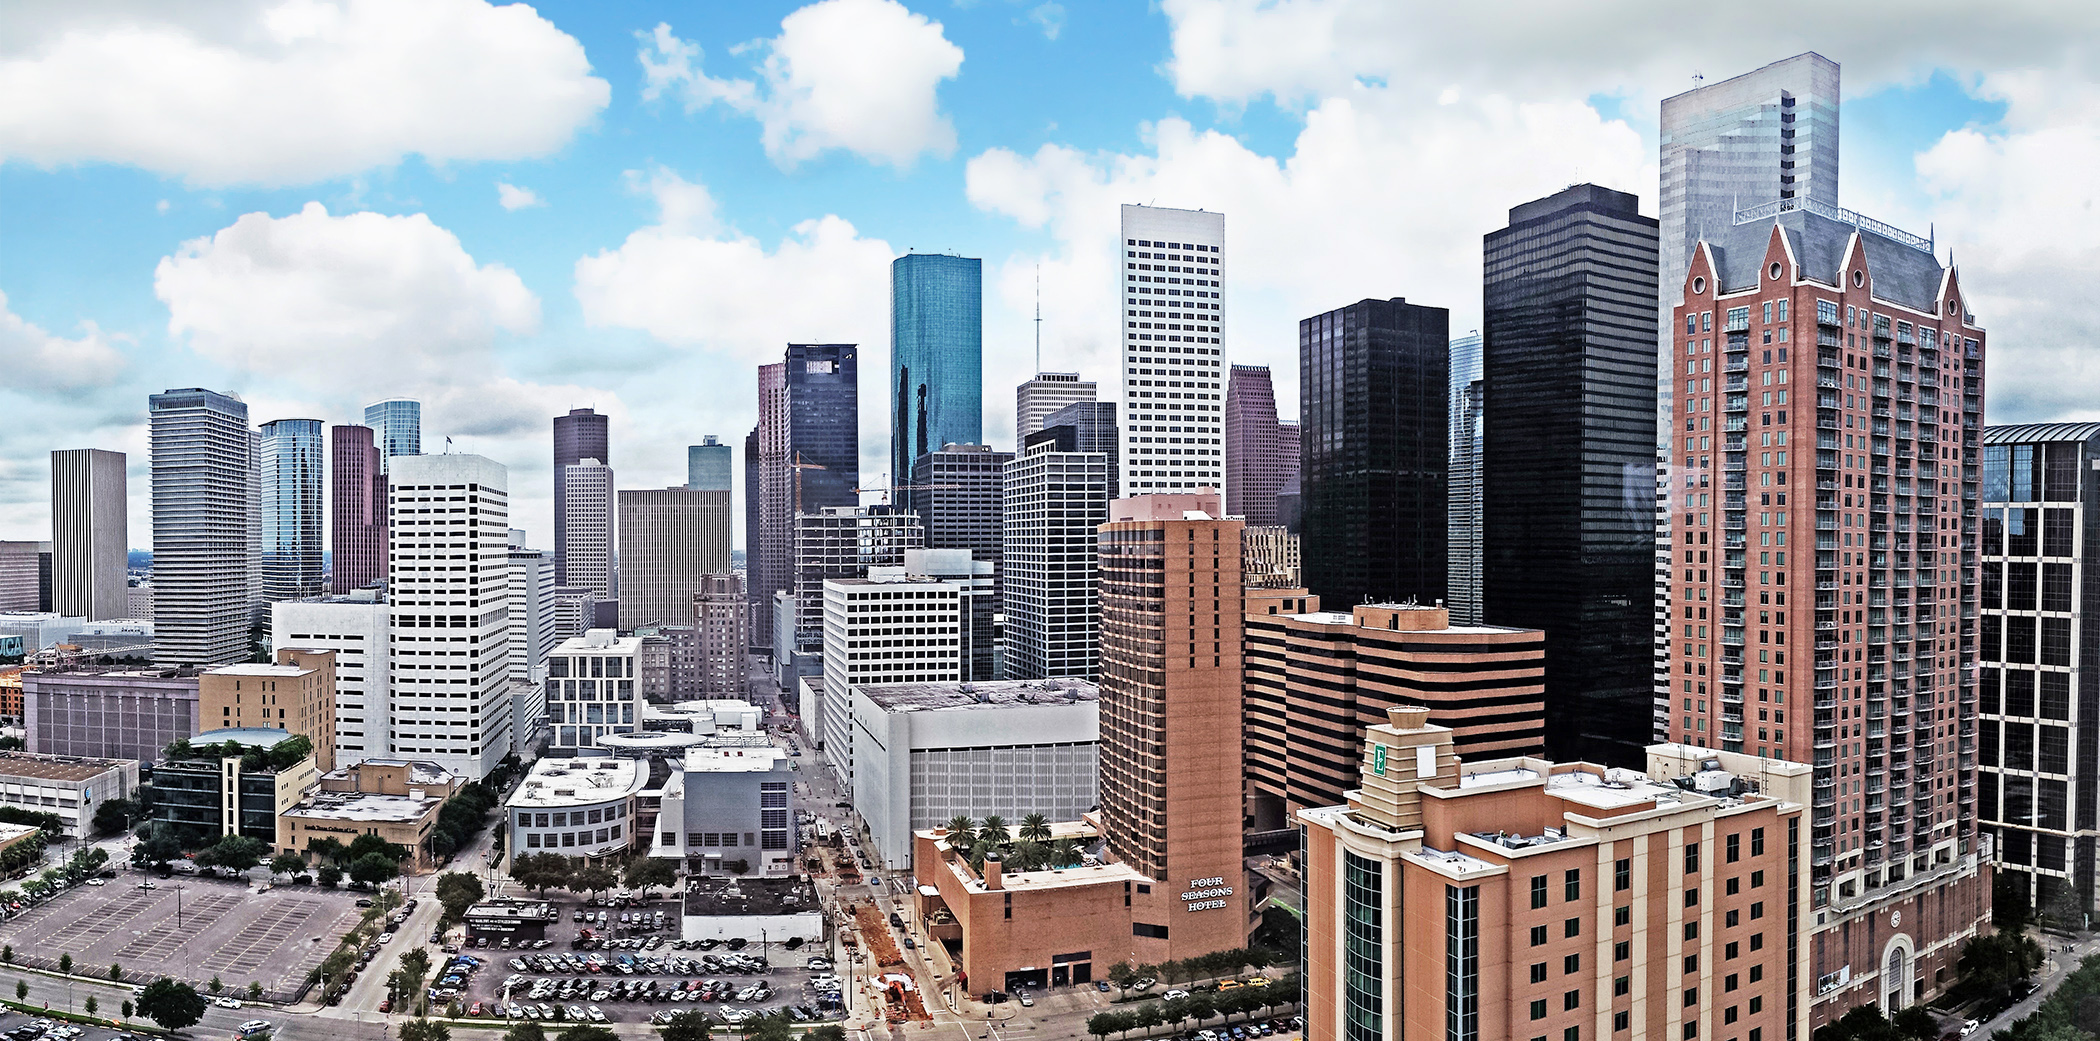 """Houston is Looking Pretty Good Here: The Largest of the 12 cities where you can """"live like royalty"""" on $60,000 – and it is great for lots of other reasons"""